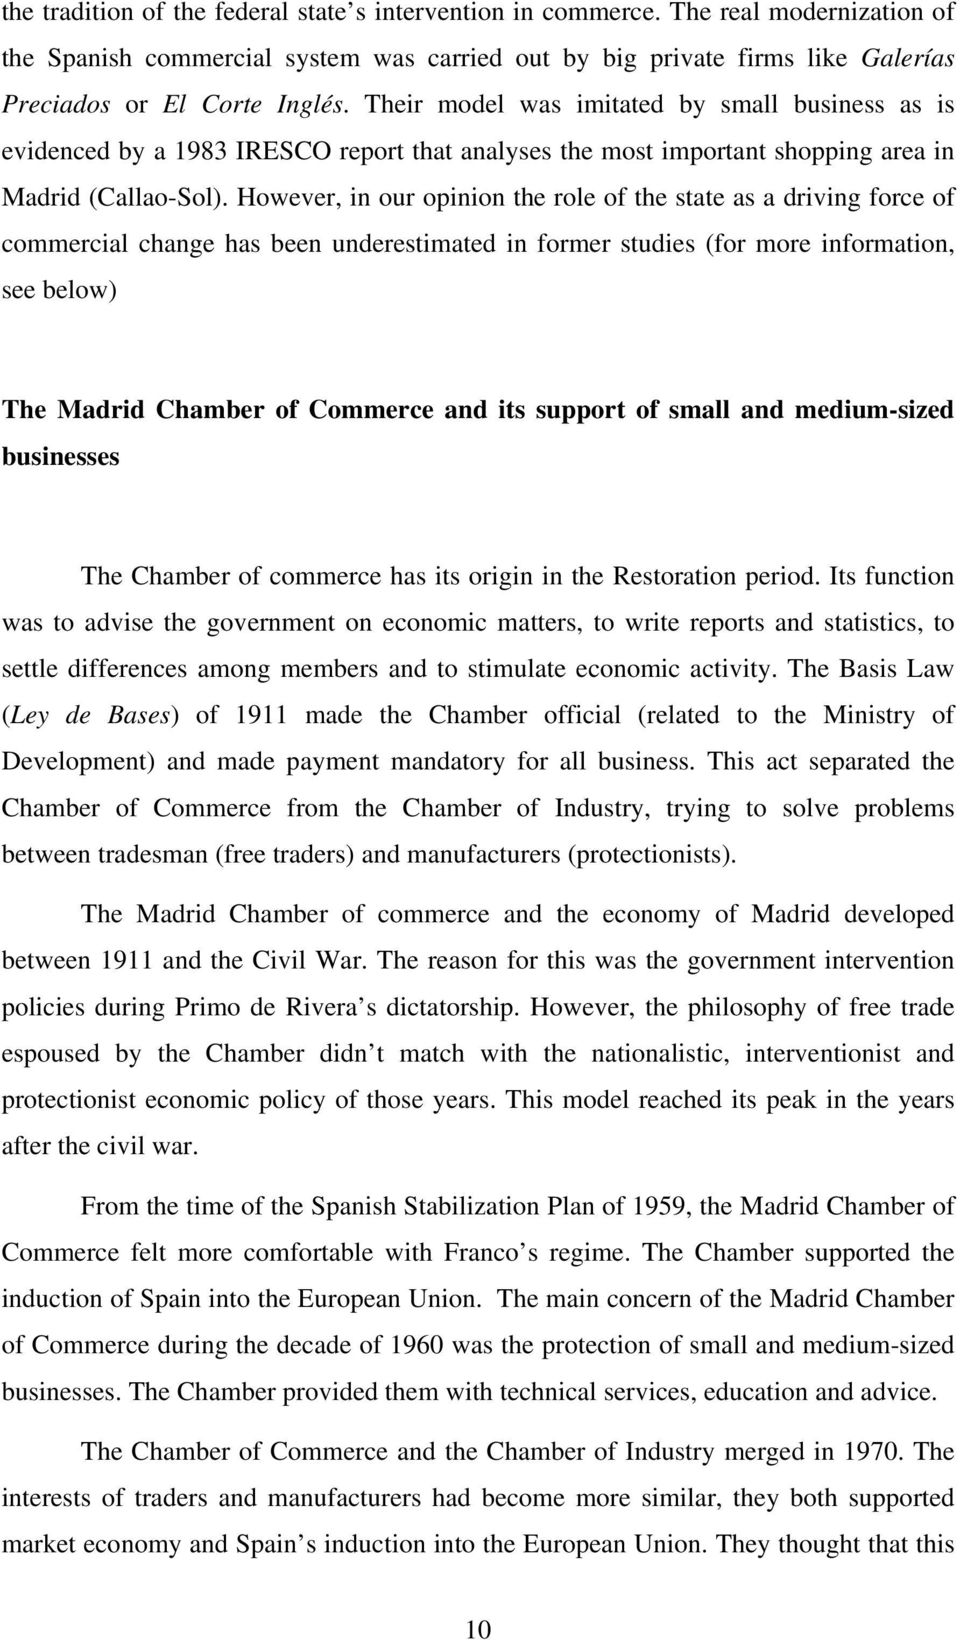 However, in our opinion the role of the state as a driving force of commercial change has been underestimated in former studies (for more information, see below) The Madrid Chamber of Commerce and